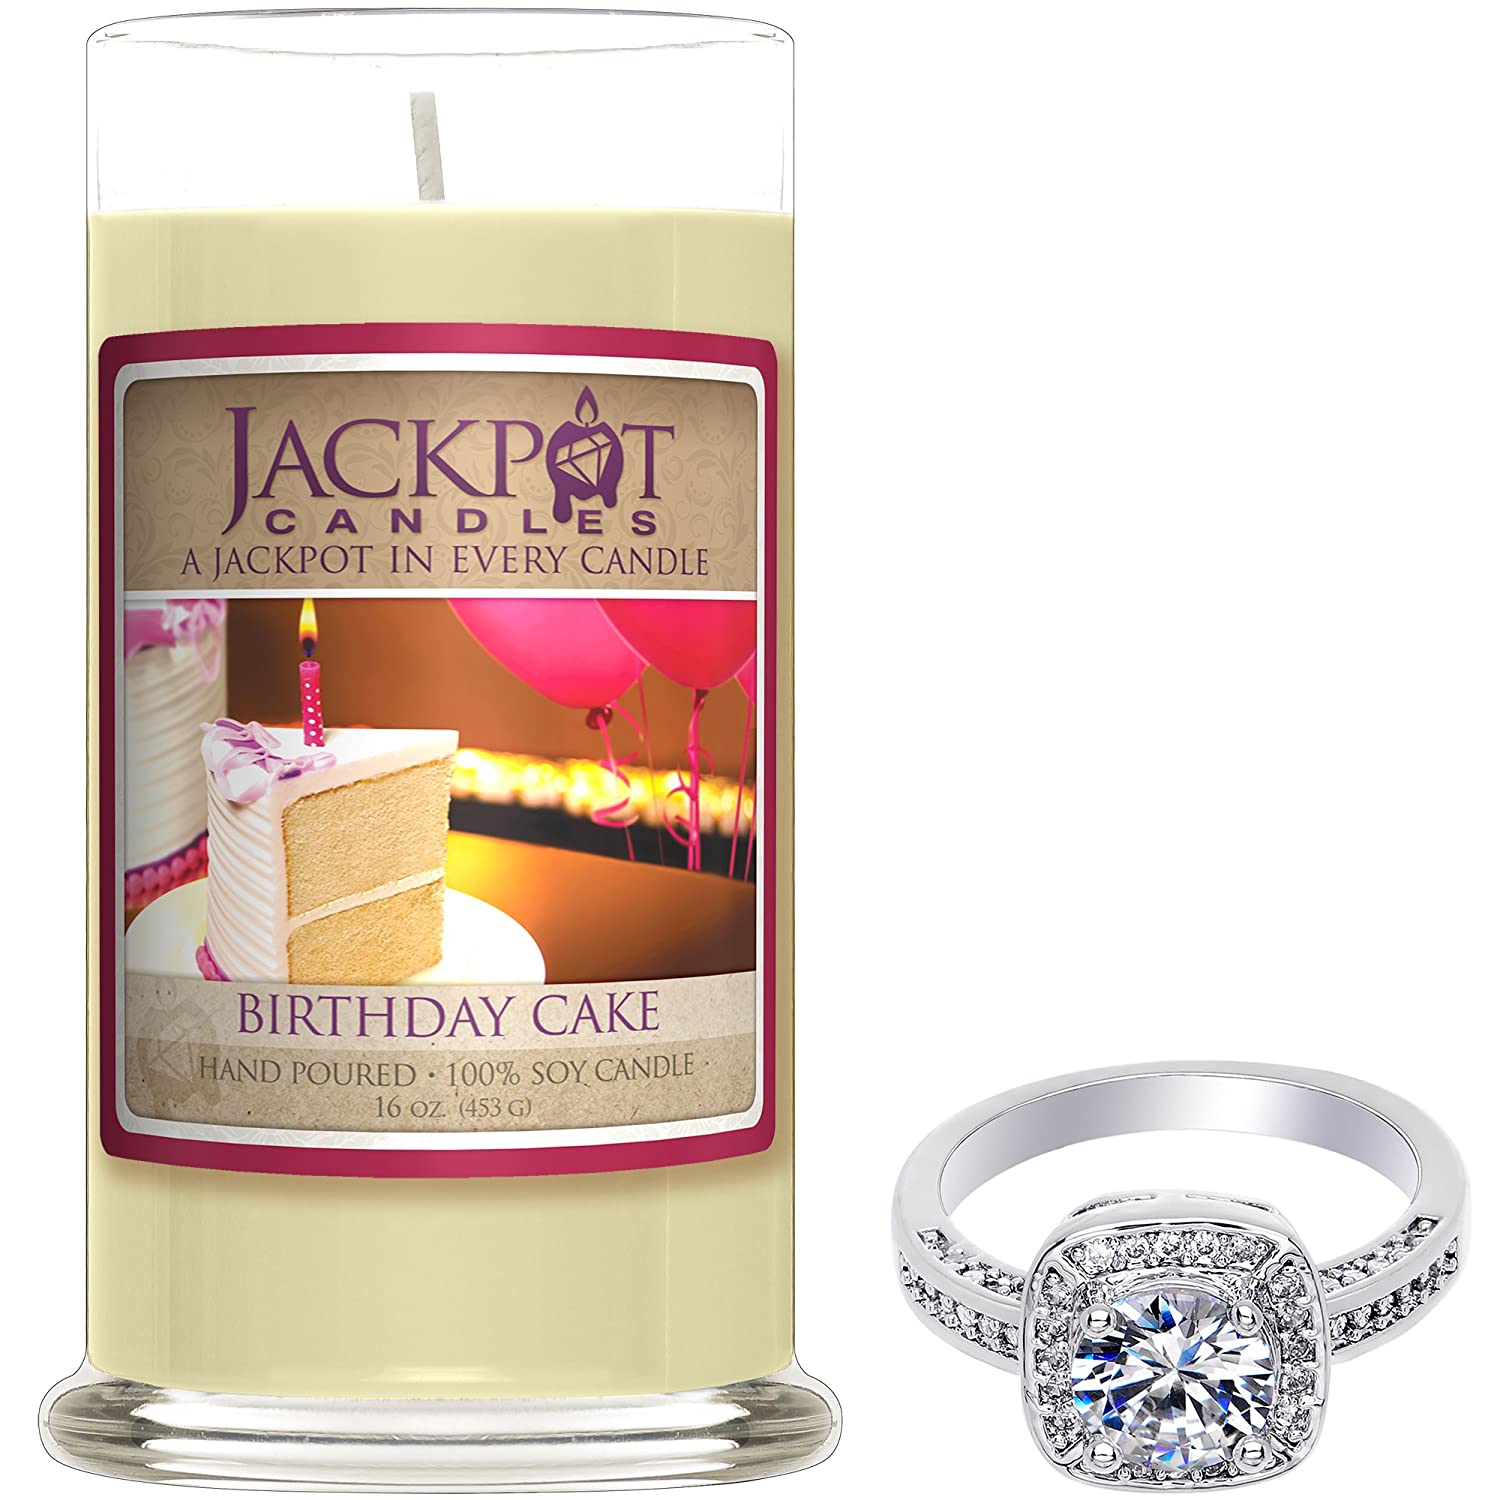 Jackpot Candles Birthday Cake Candle With Ring Inside Surprise